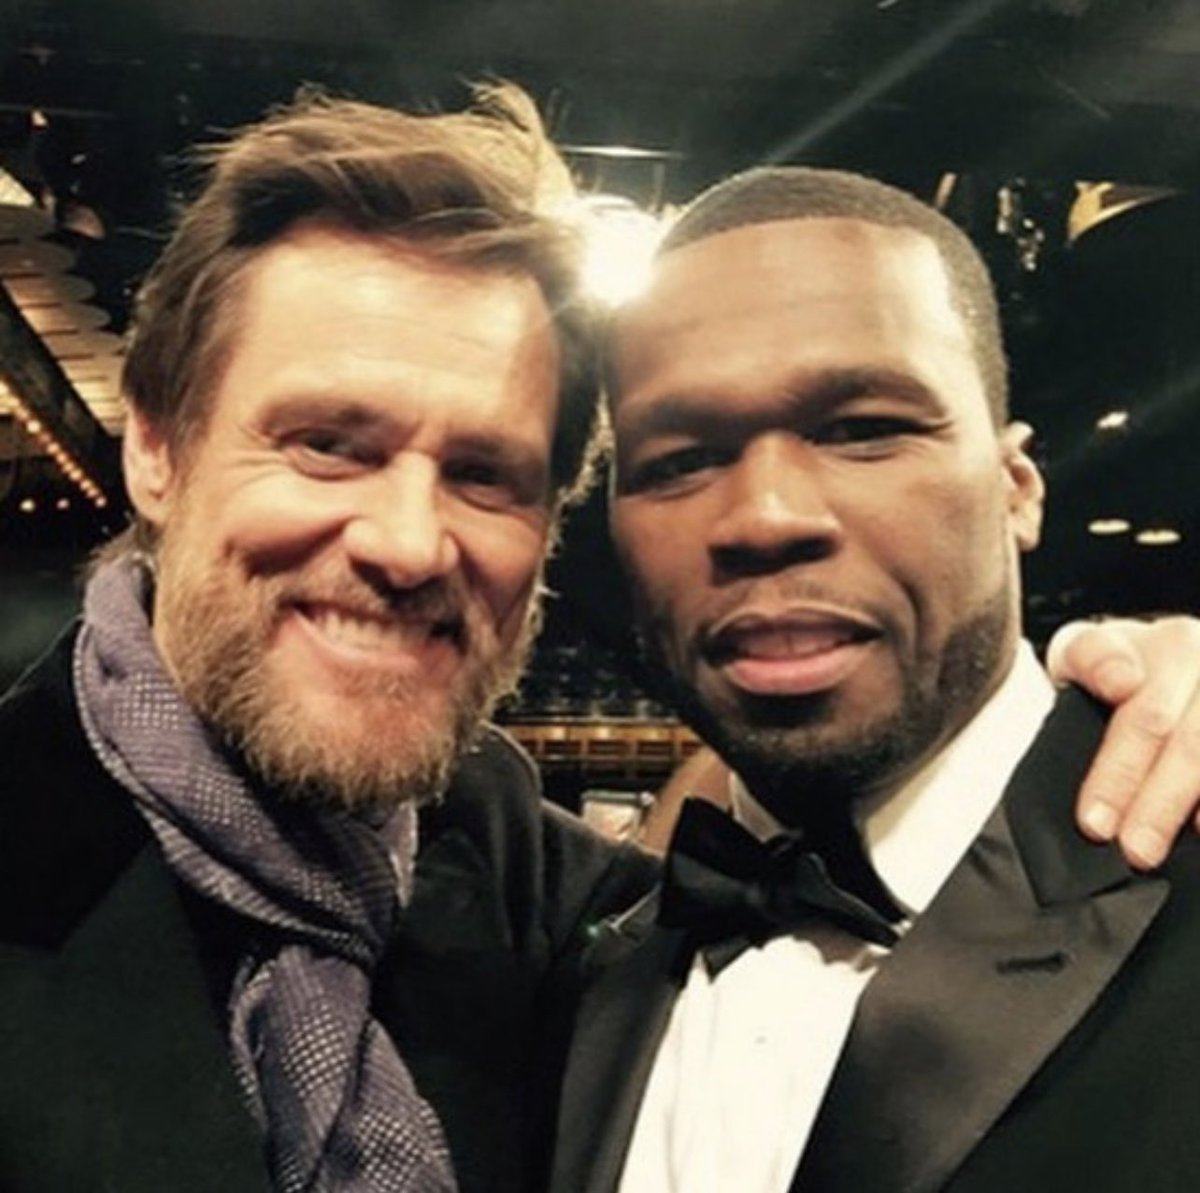 happy birthday to jim carrey wishing you many more.